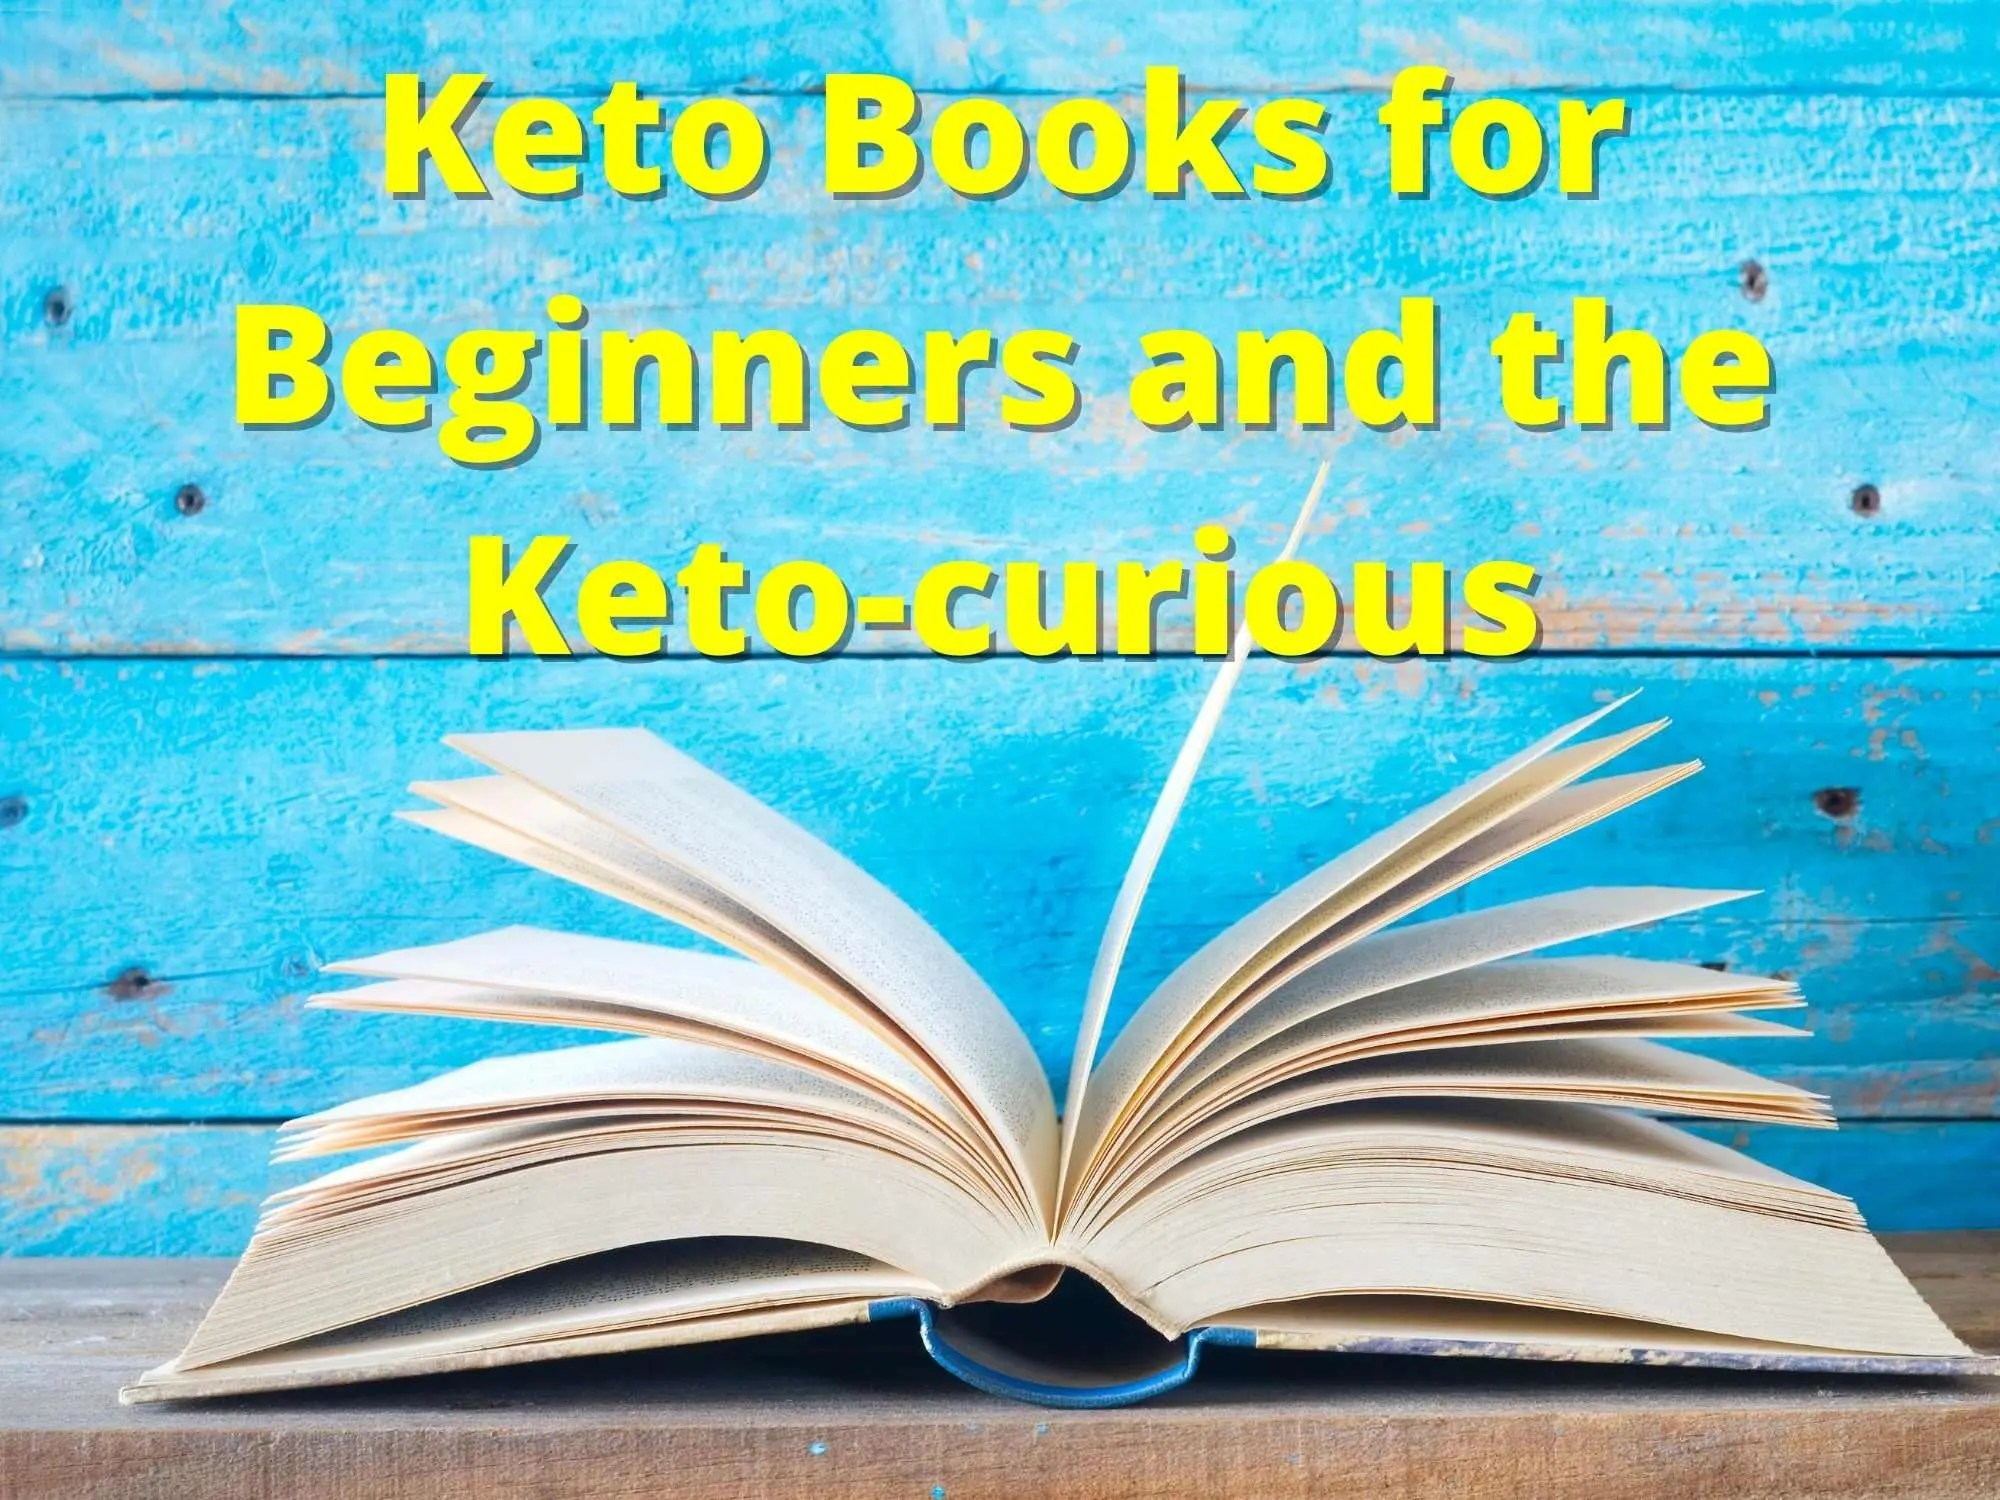 My 8 Favorite Keto Books for Beginners and the Keto-curious on Amazon